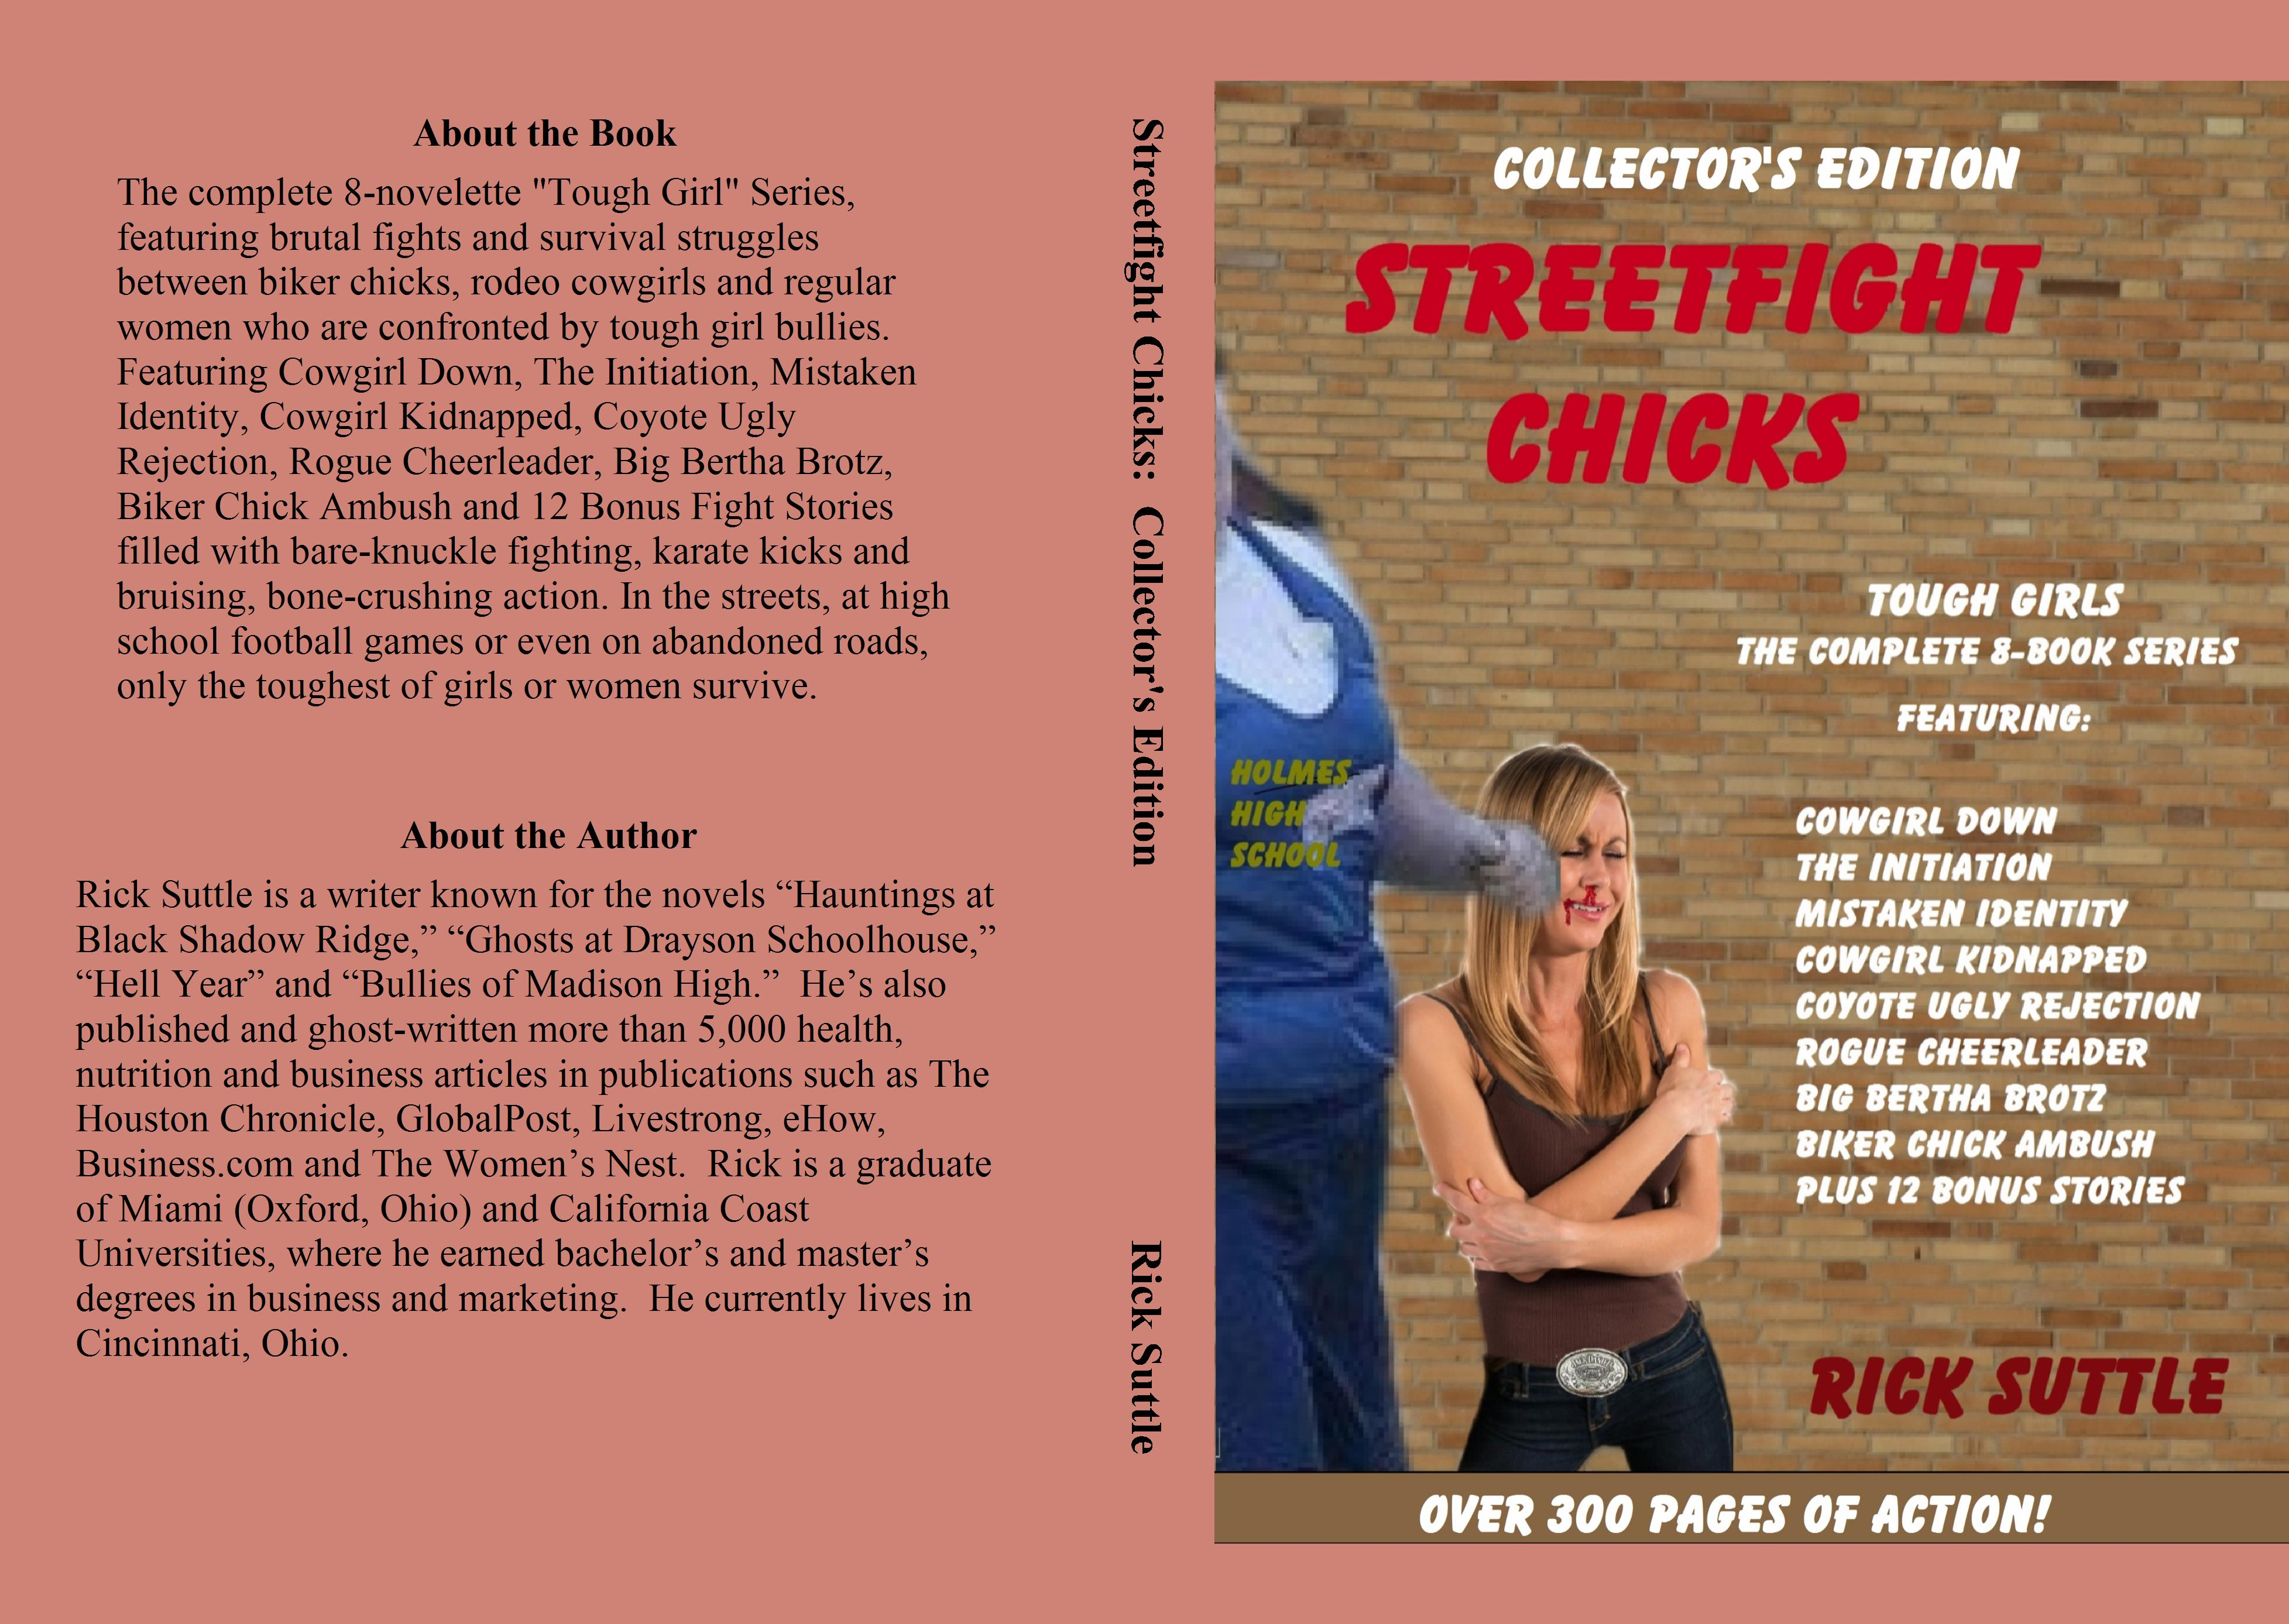 Streetfight Chicks: Collector